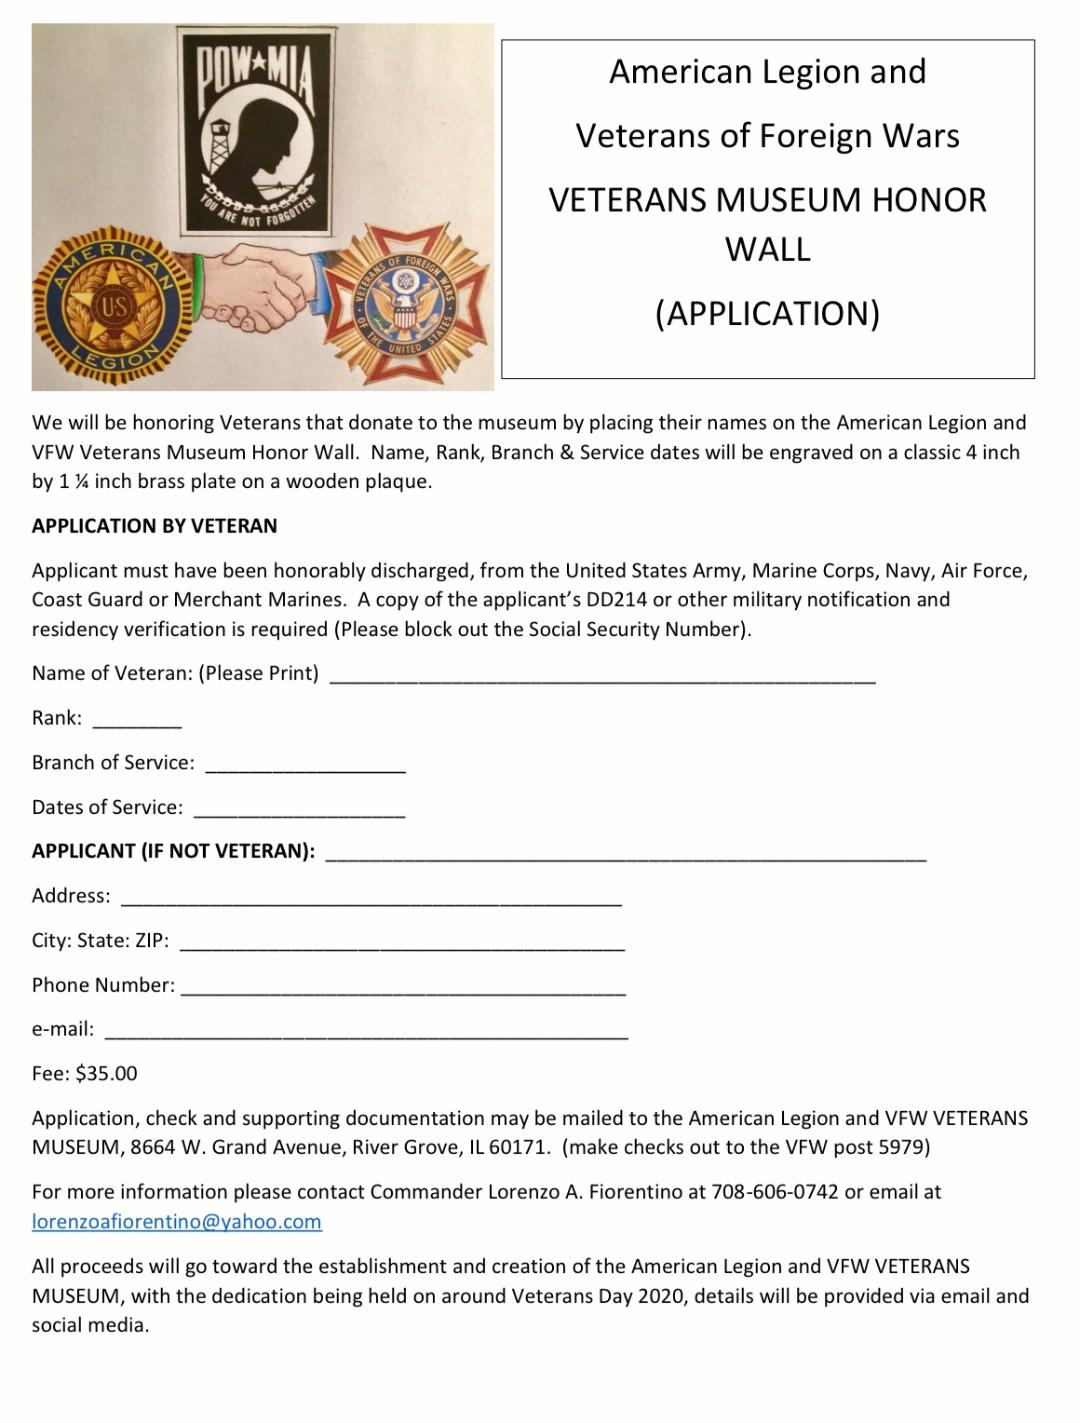 Application for Military Veterans Honor Wall